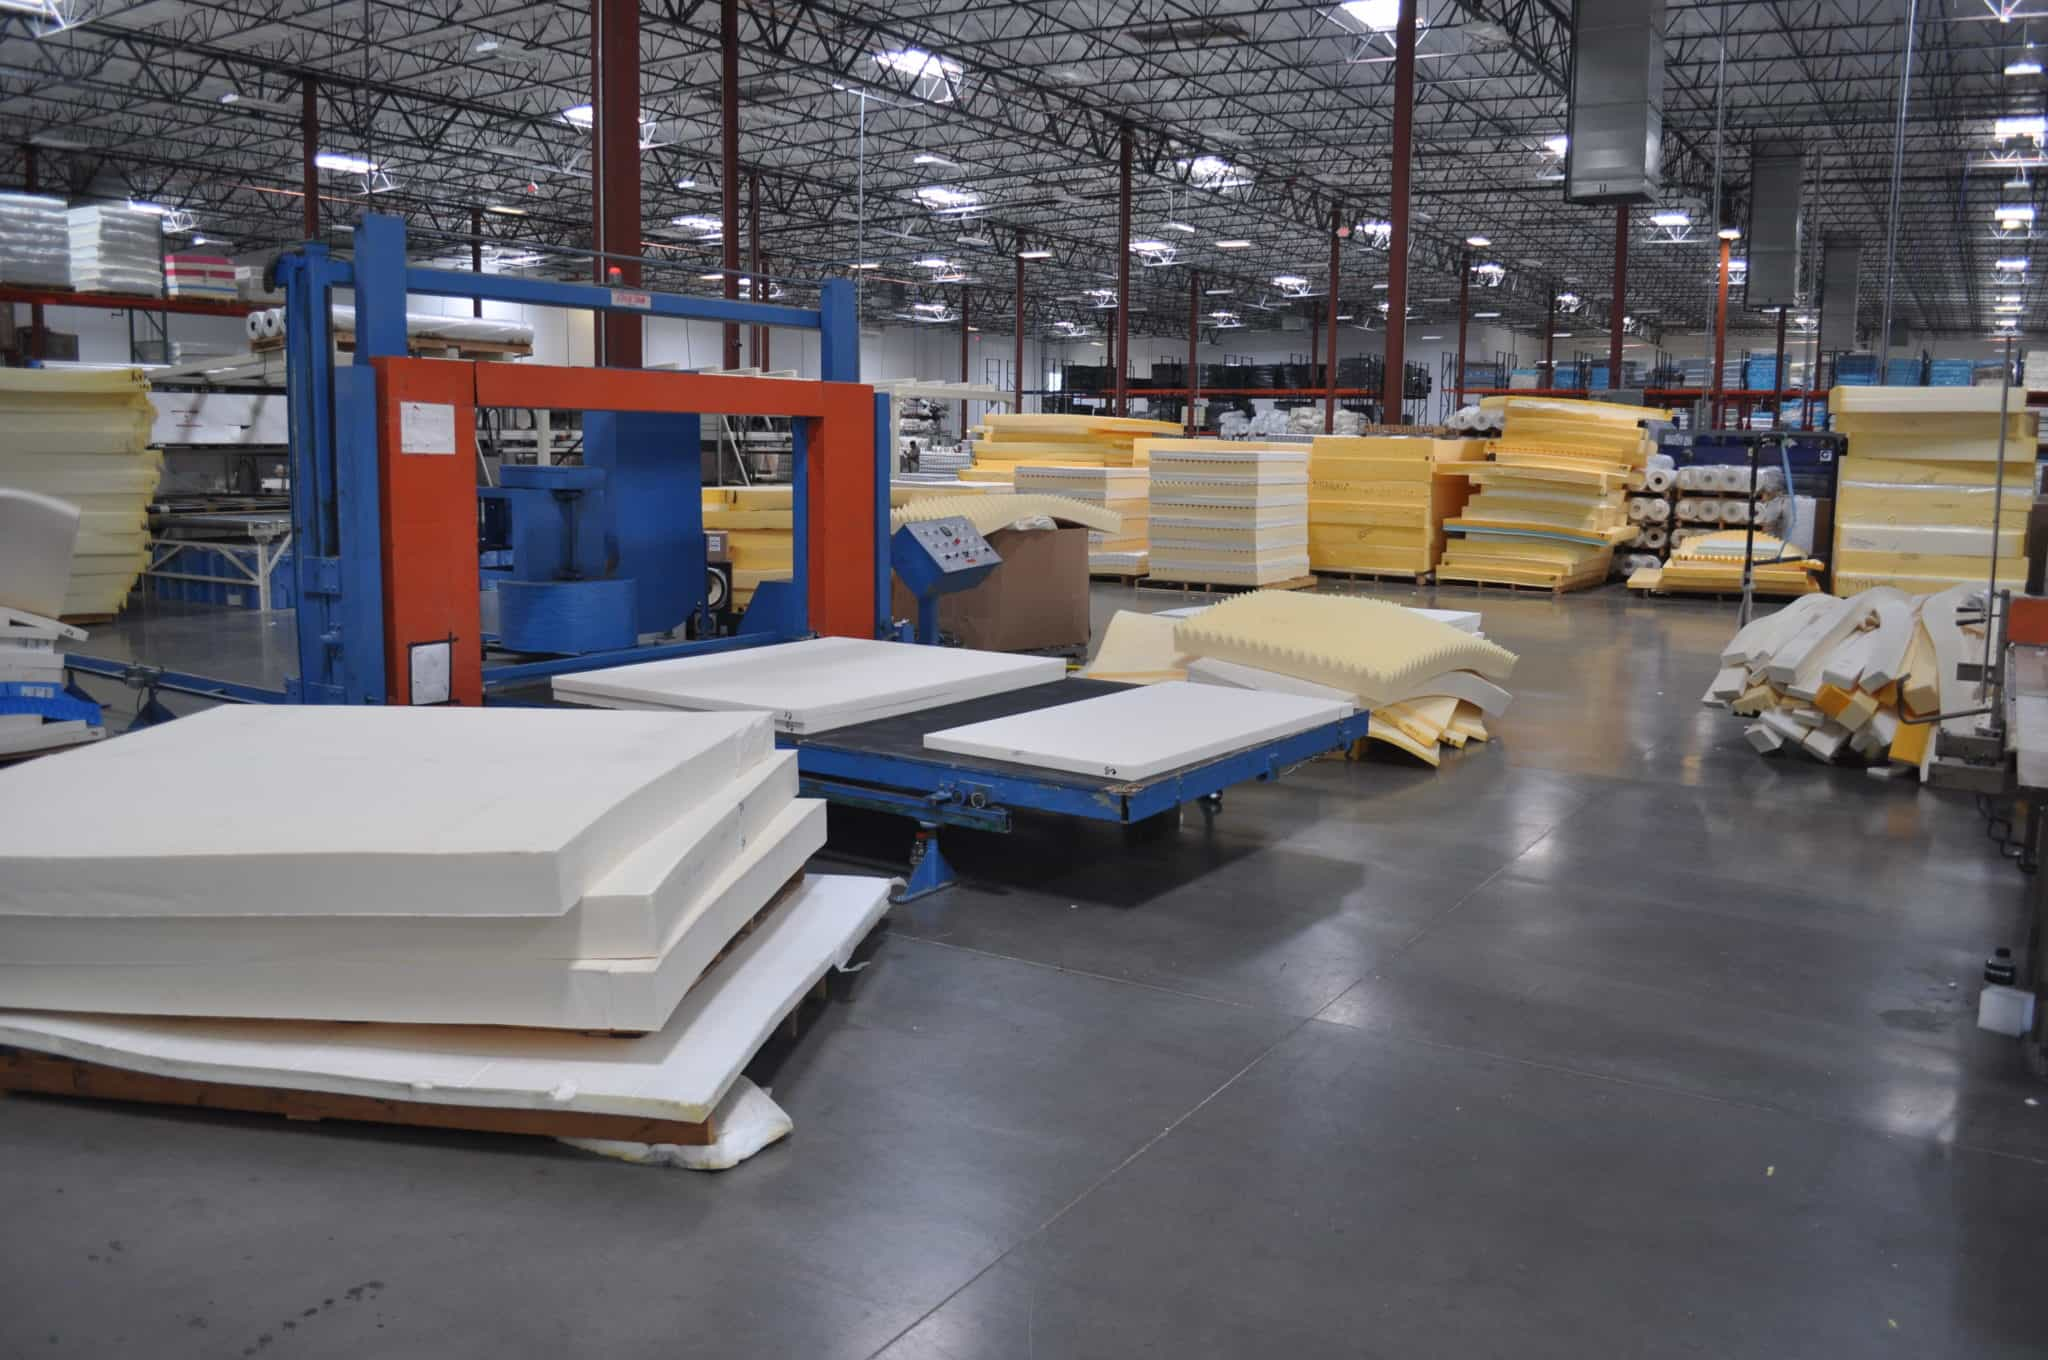 View of the foam quadrant at the Brooklyn Bedding mattress factory